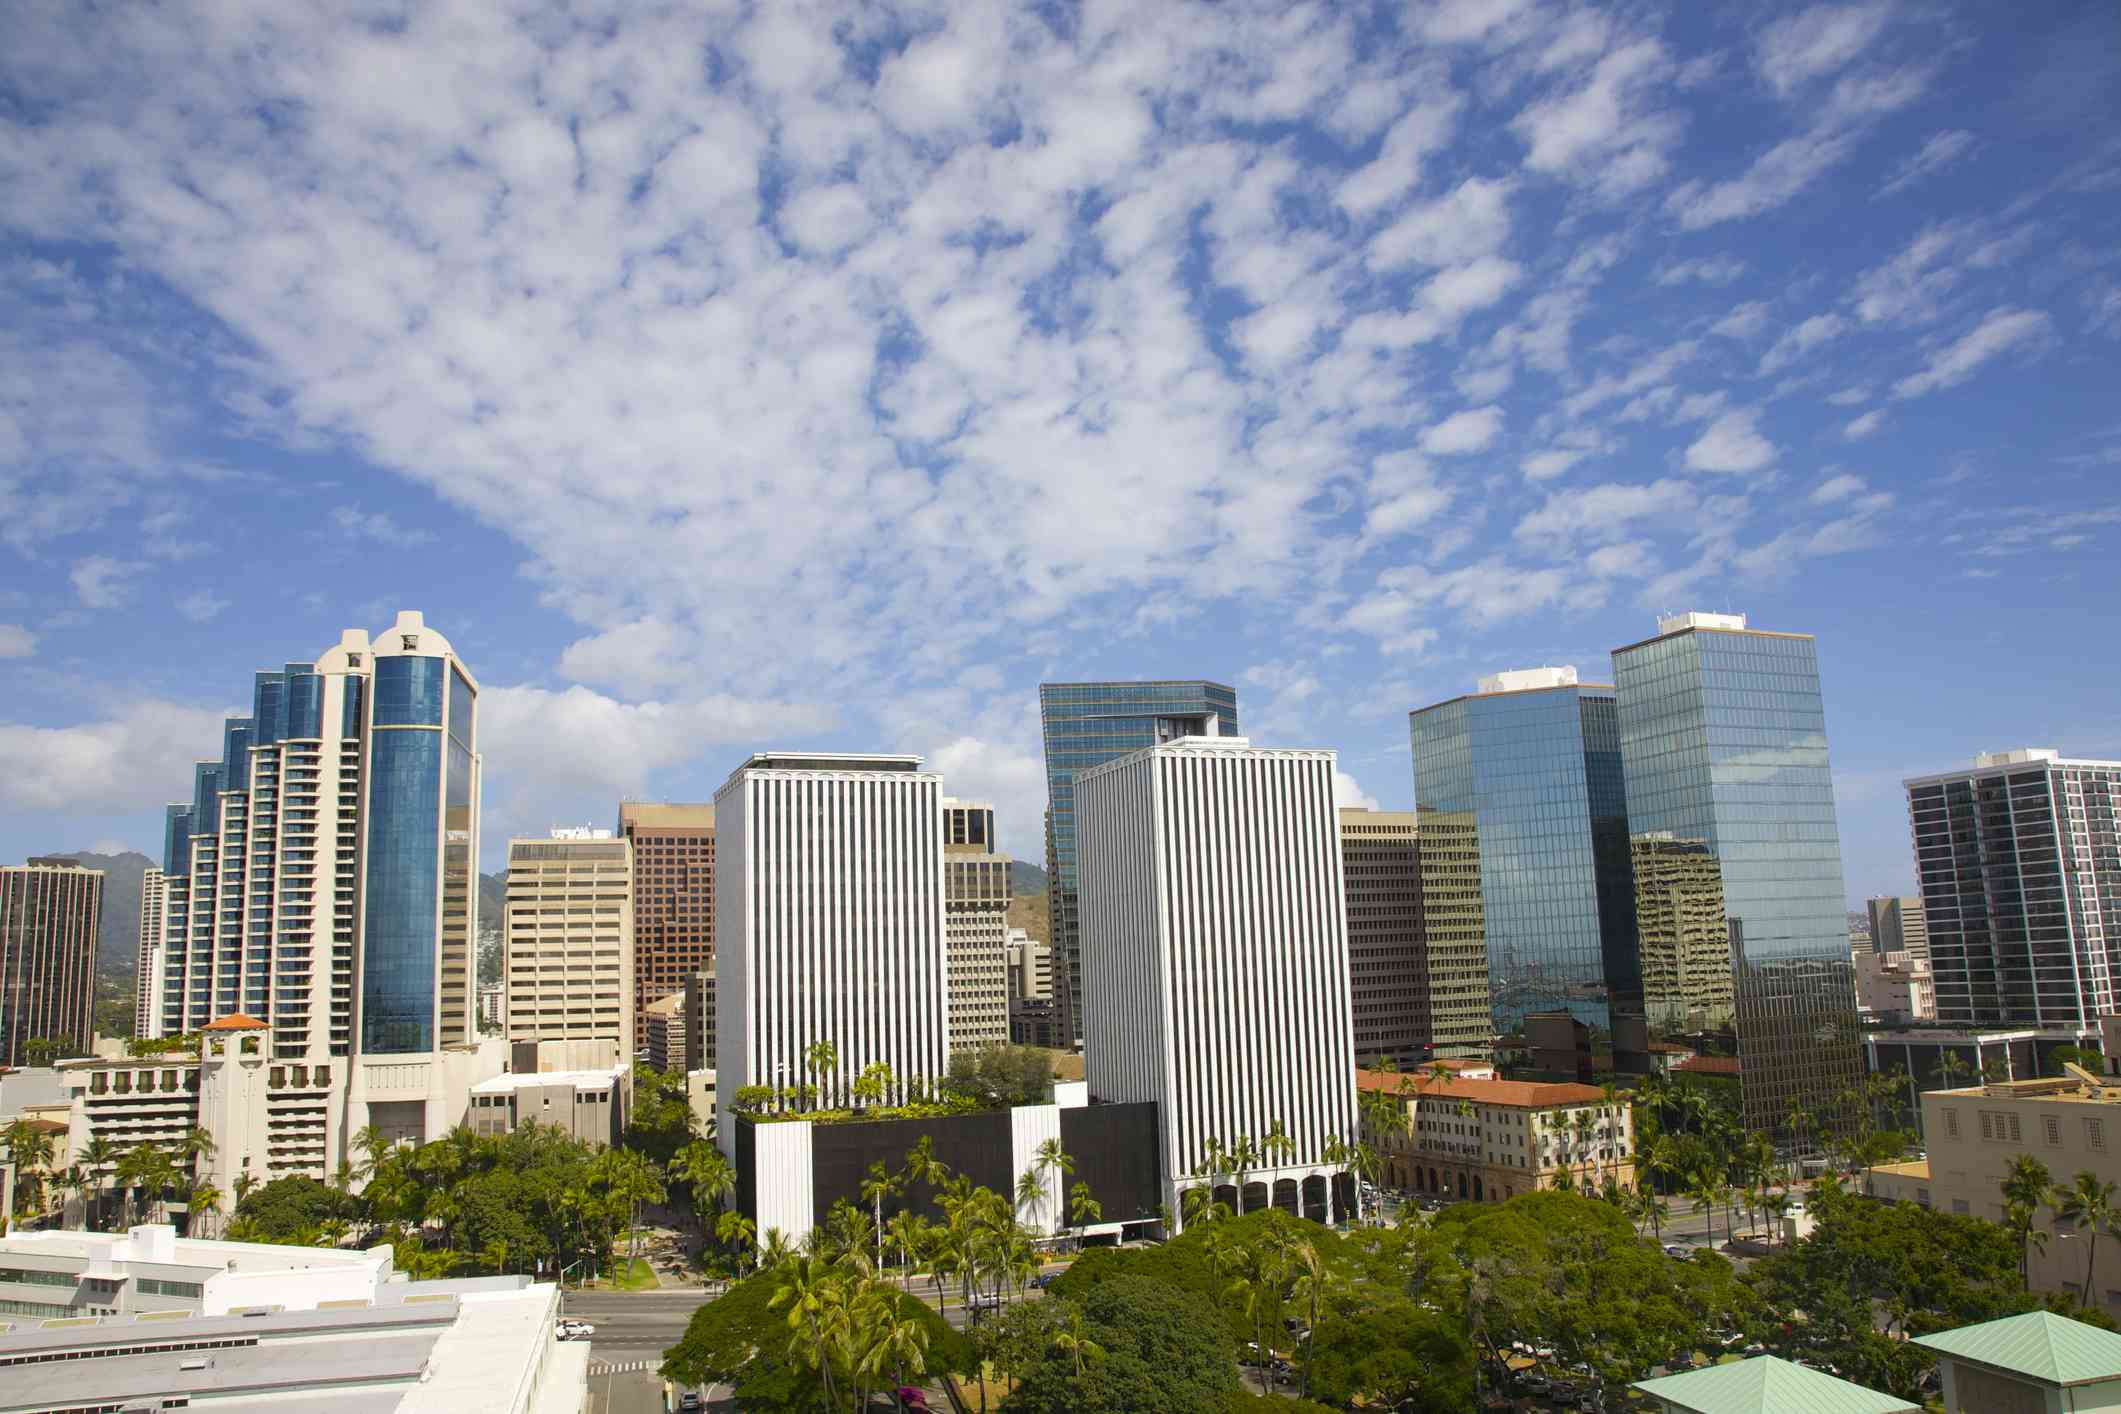 tall modern office towers and residential buildings in the background with a lush green park in the foreground under a blue sky with wispy white clouds on a sunny day in Honolulu